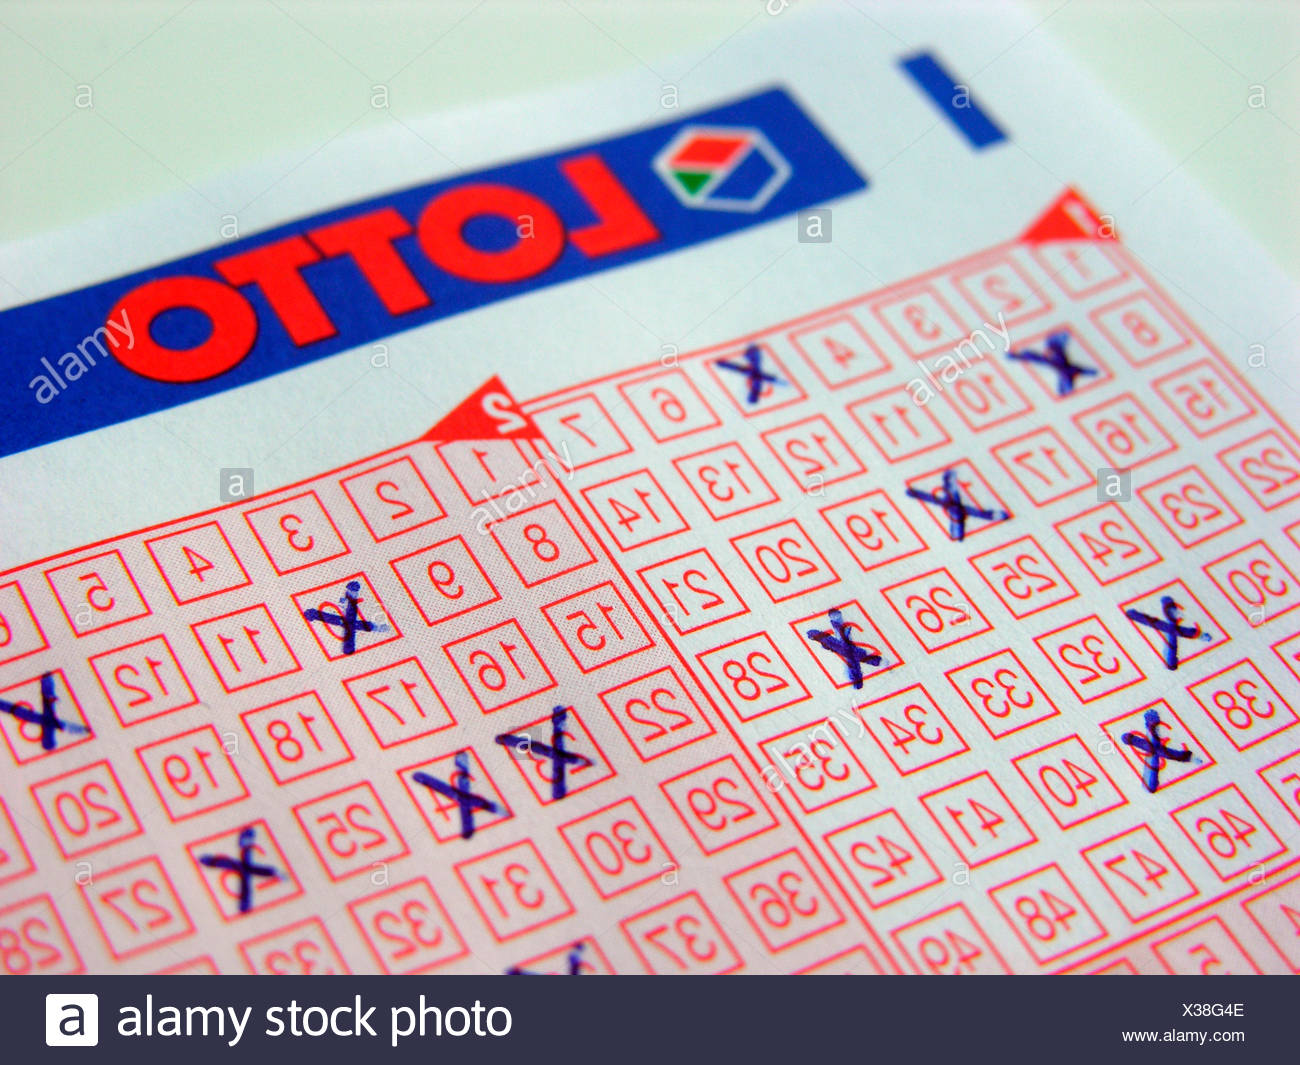 Lottery ticket - Stock Image